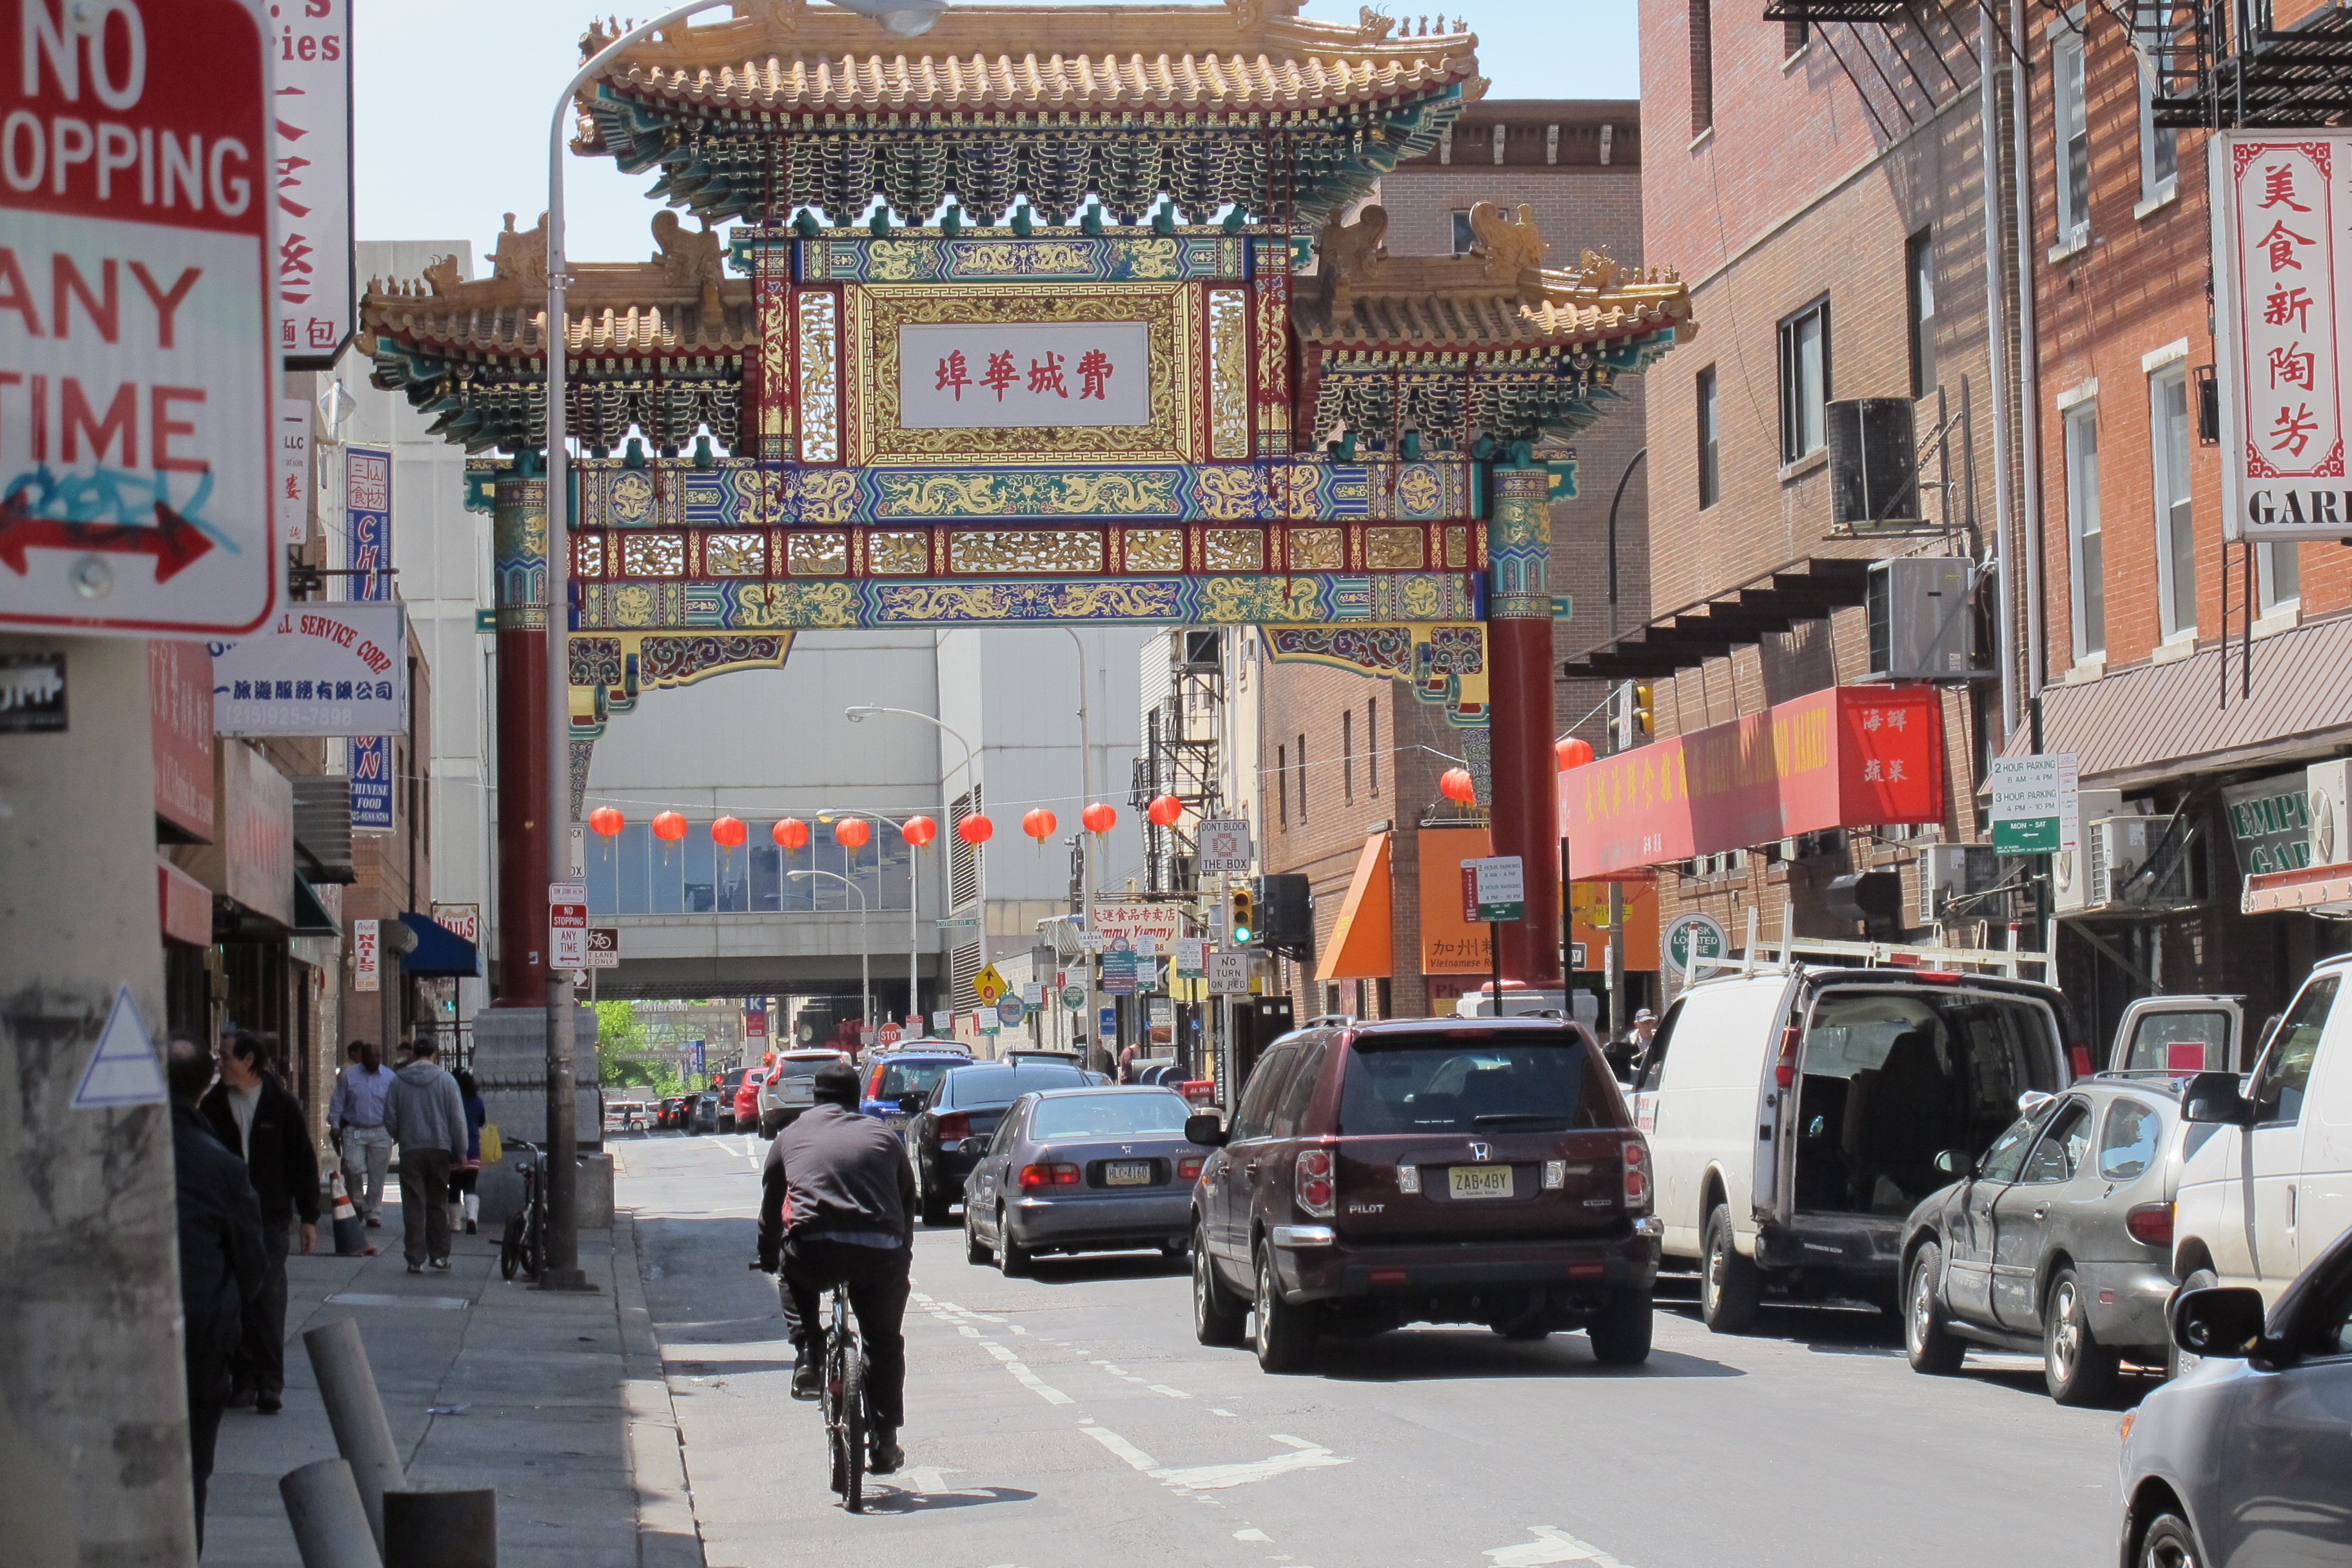 (Testing out a bike lane pilot project on 10th Street in Chinatown.)